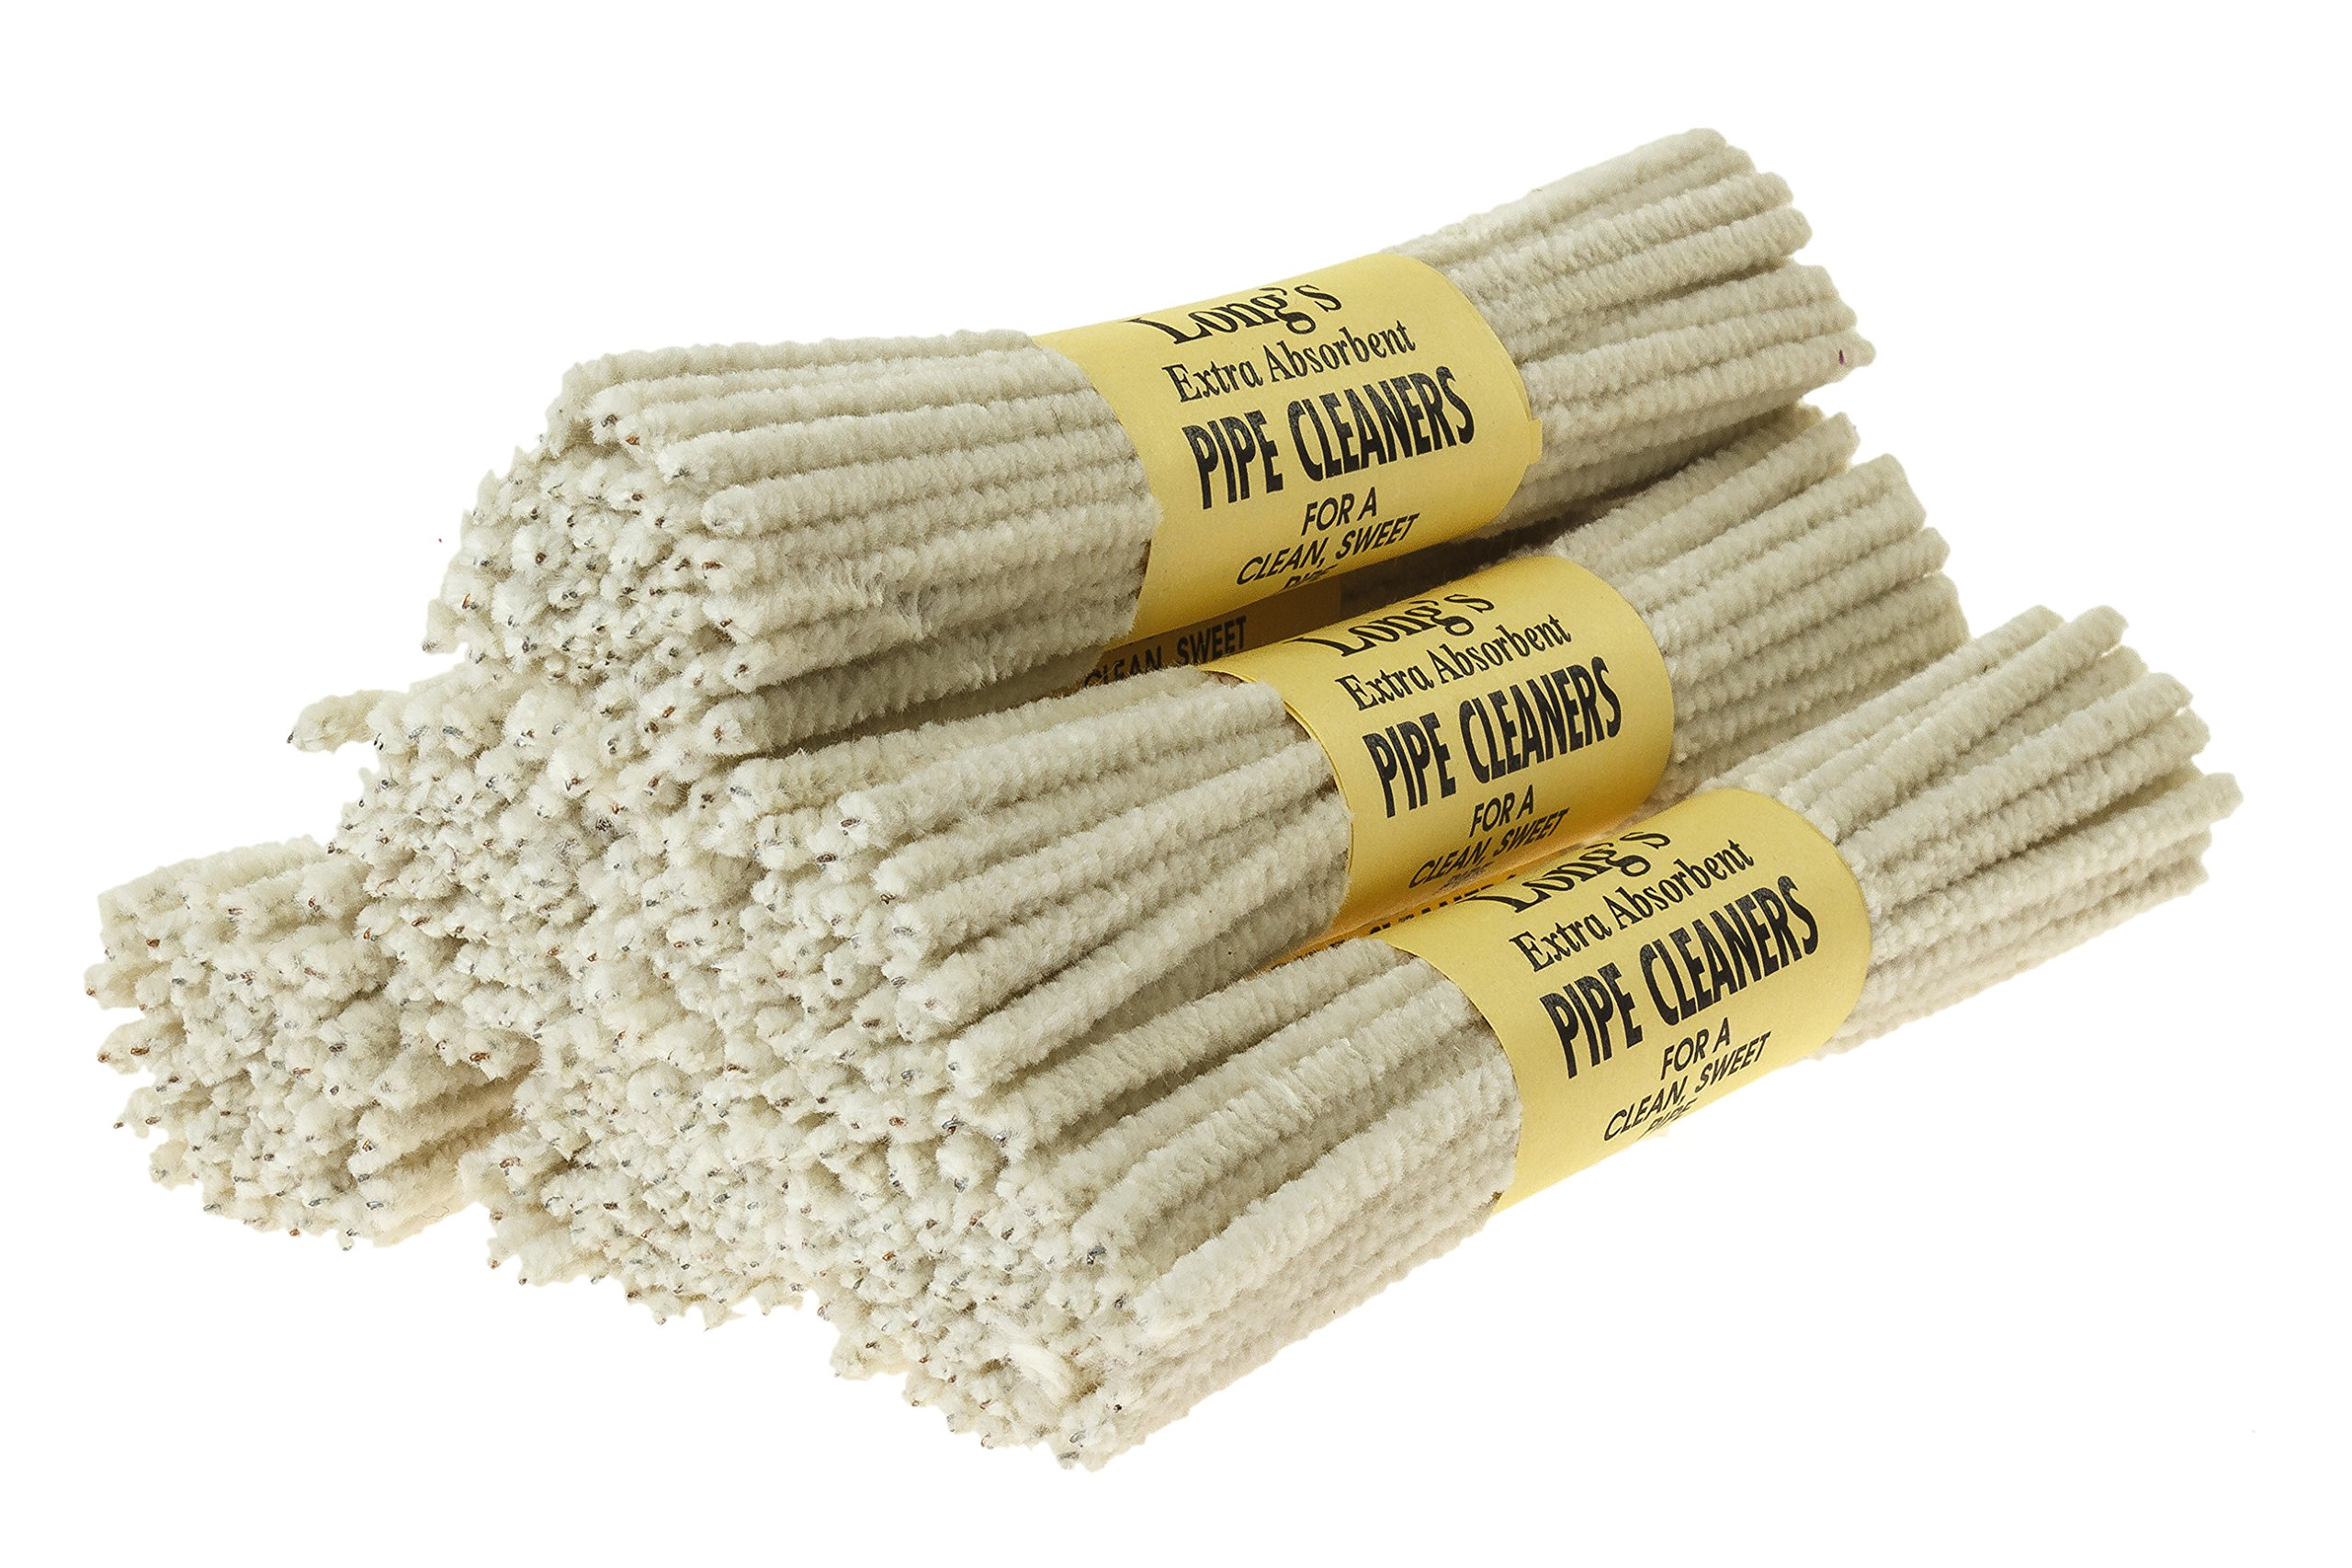 BJ Long Extra Absorbent Pipe Cleaners 56 Count - 6 Pack TP-1472